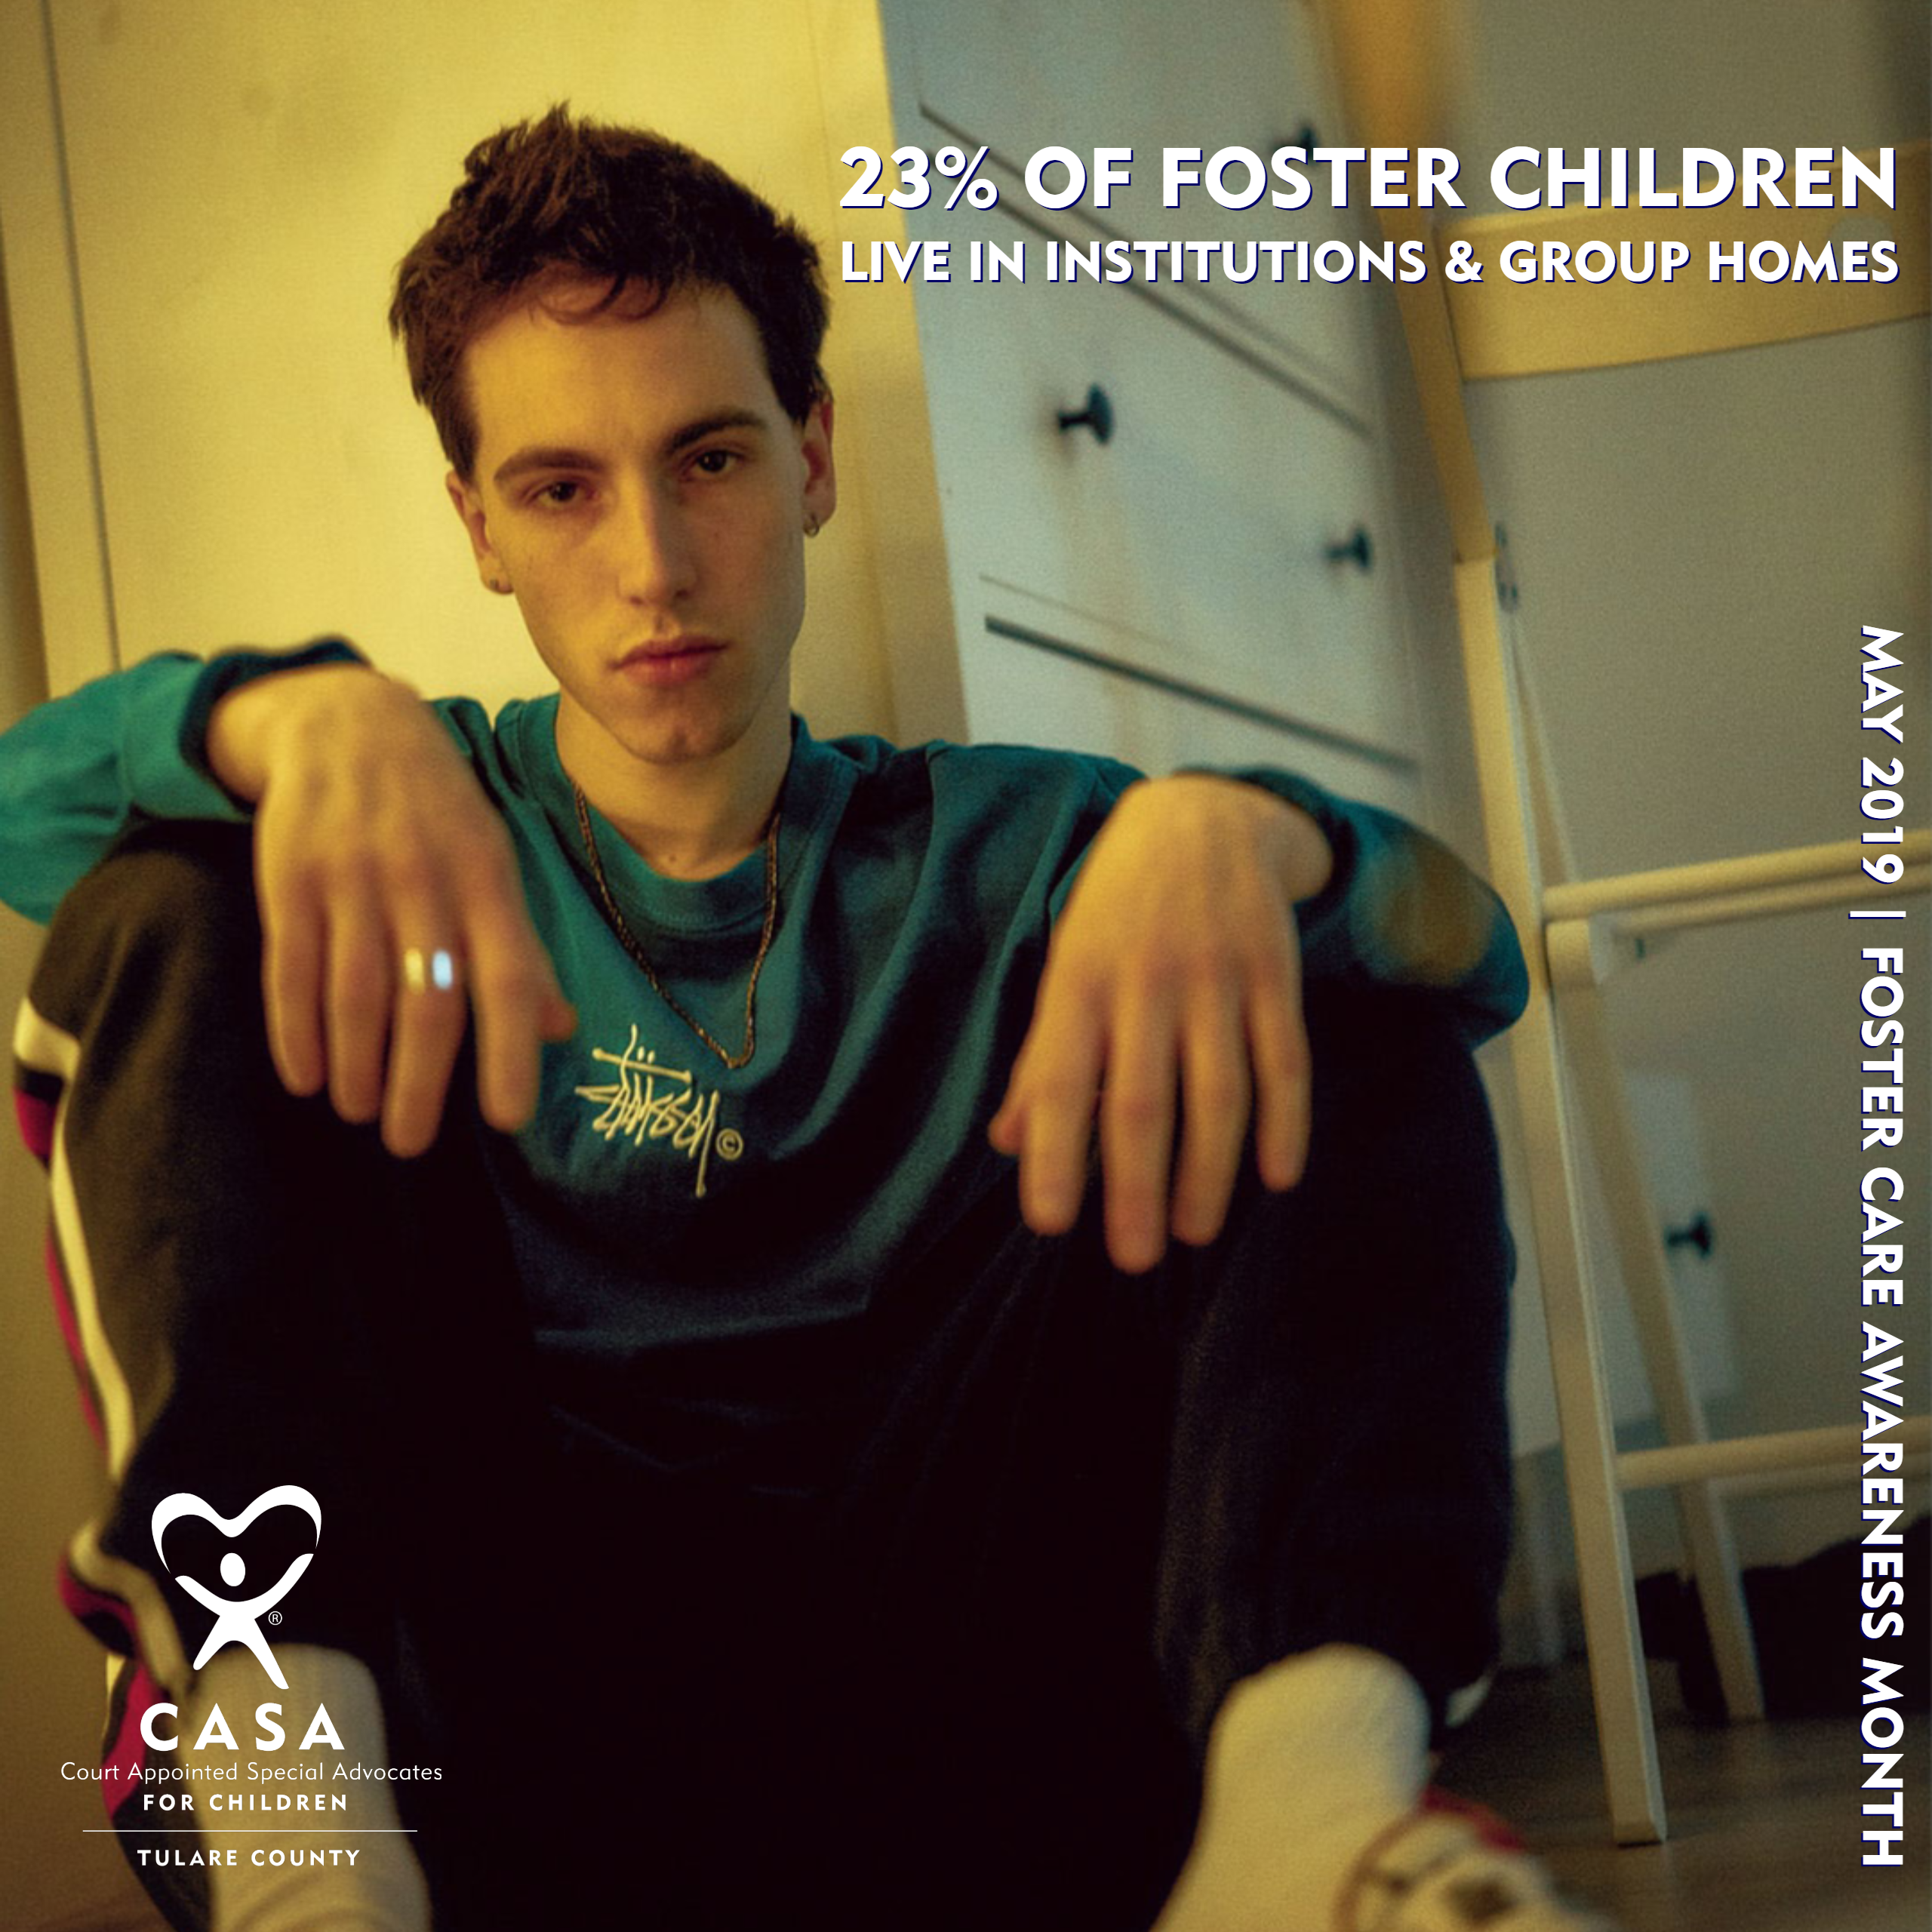 many foster youth are in group homes